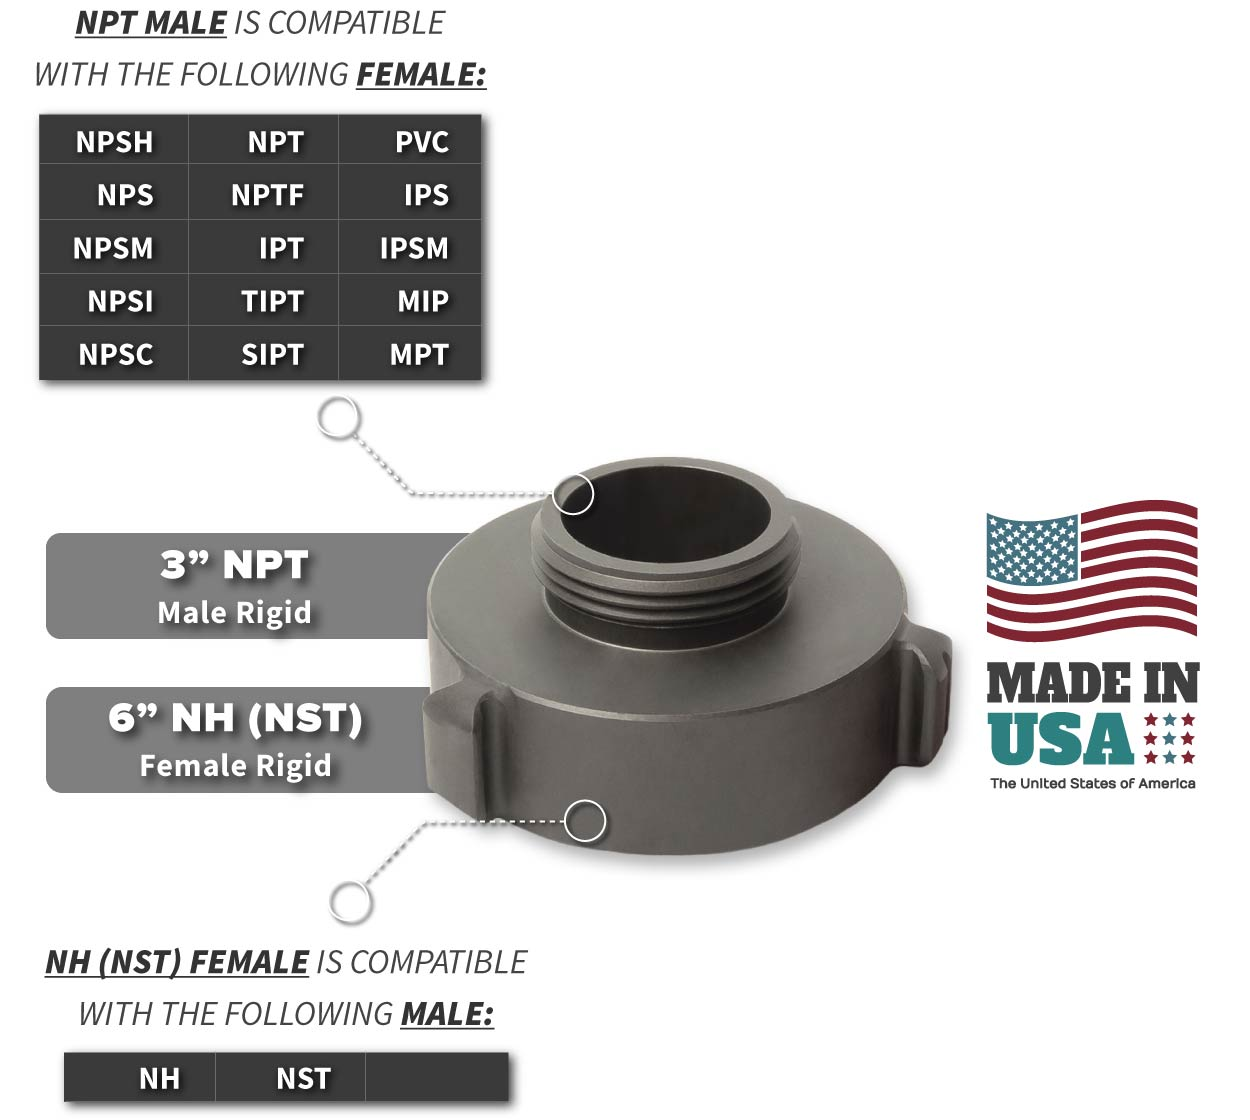 6 Inch NH-NST Female x 3 Inch NPT Male Compatibility Thread Chart